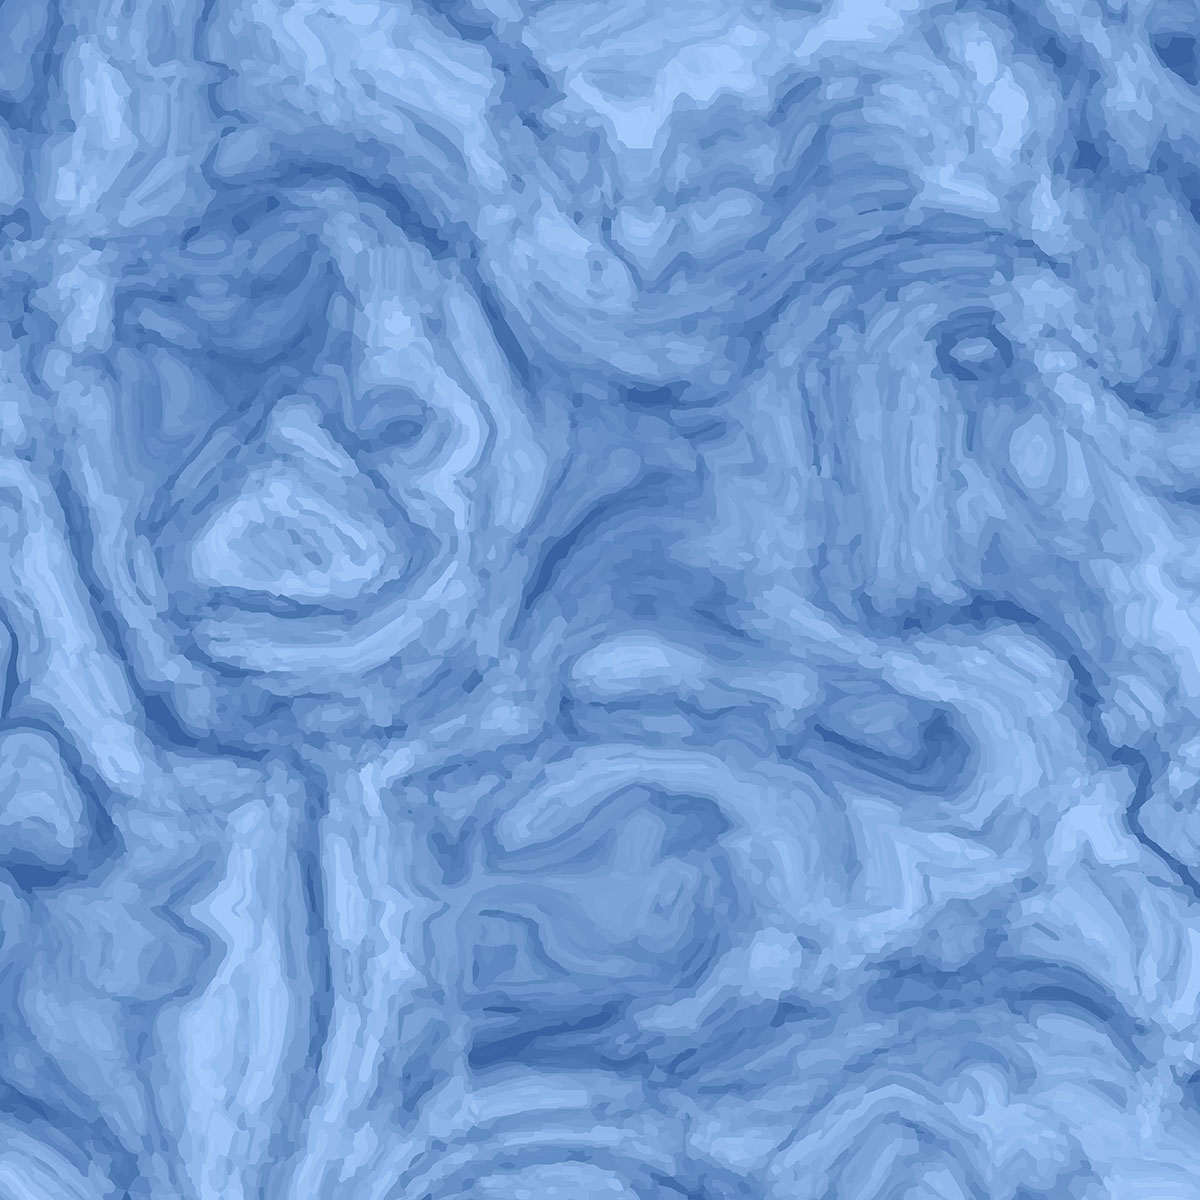 Abstract Marble Texture Download Free Vectors Clipart